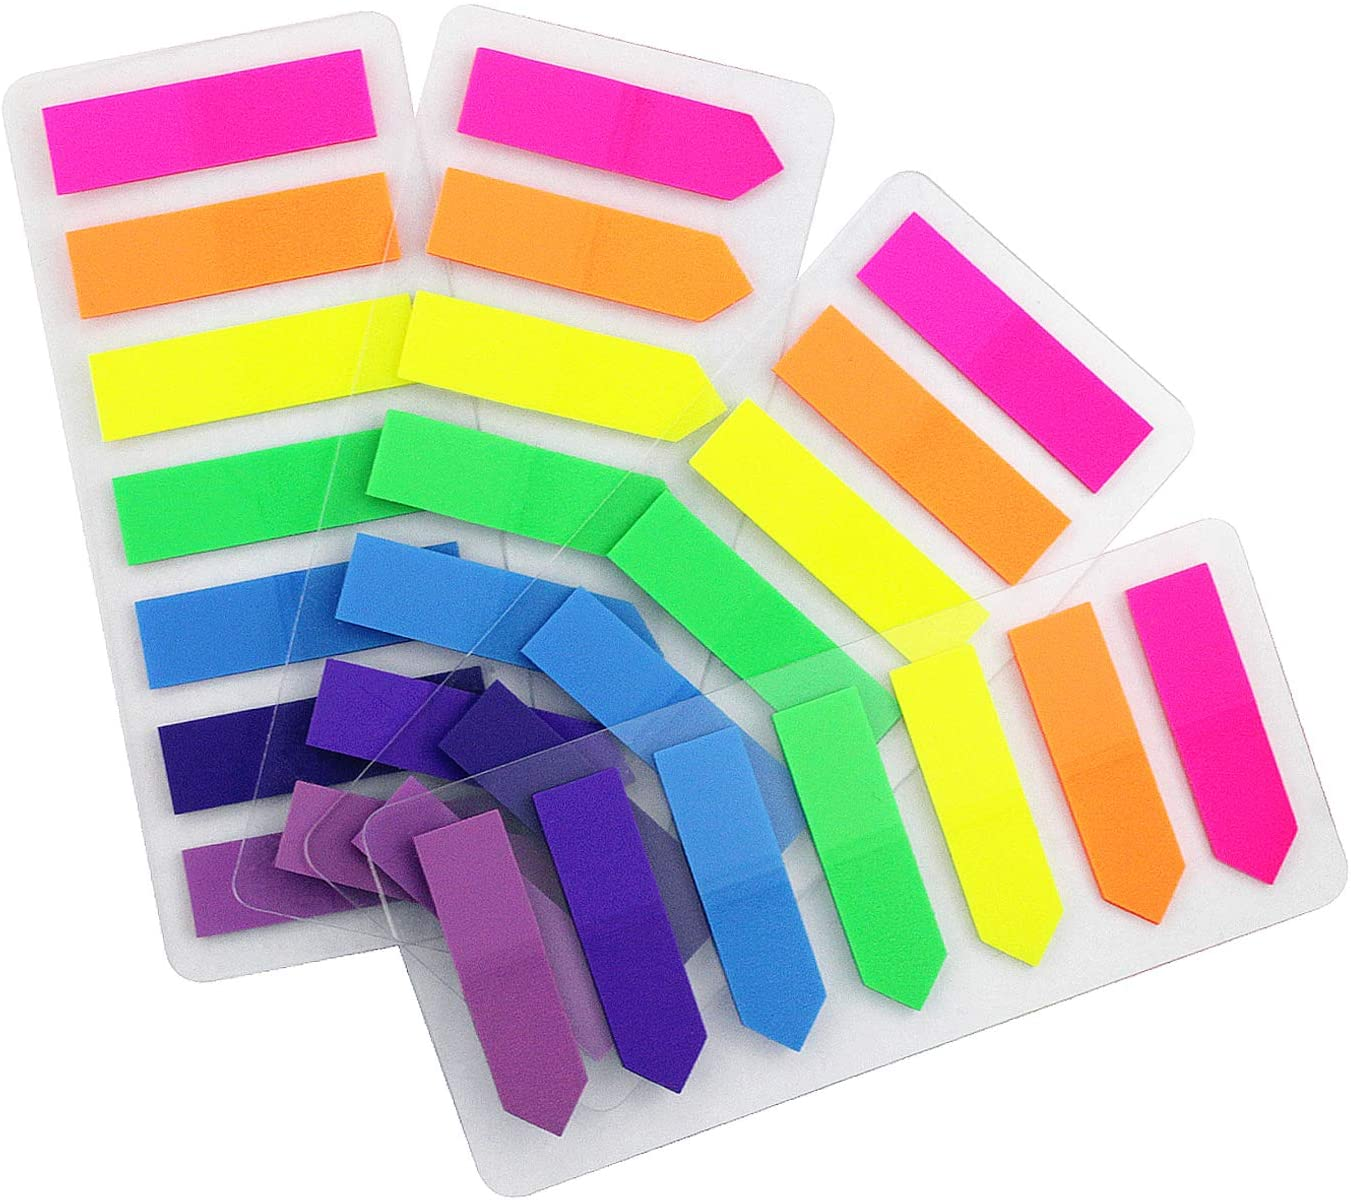 4 Sets 0.5x1.8 Flags Tabs Neon Page Markers 7 Bright Color Sticky Index Tabs Neon Note Tabs Page Flags 560 Pcs : Office Products